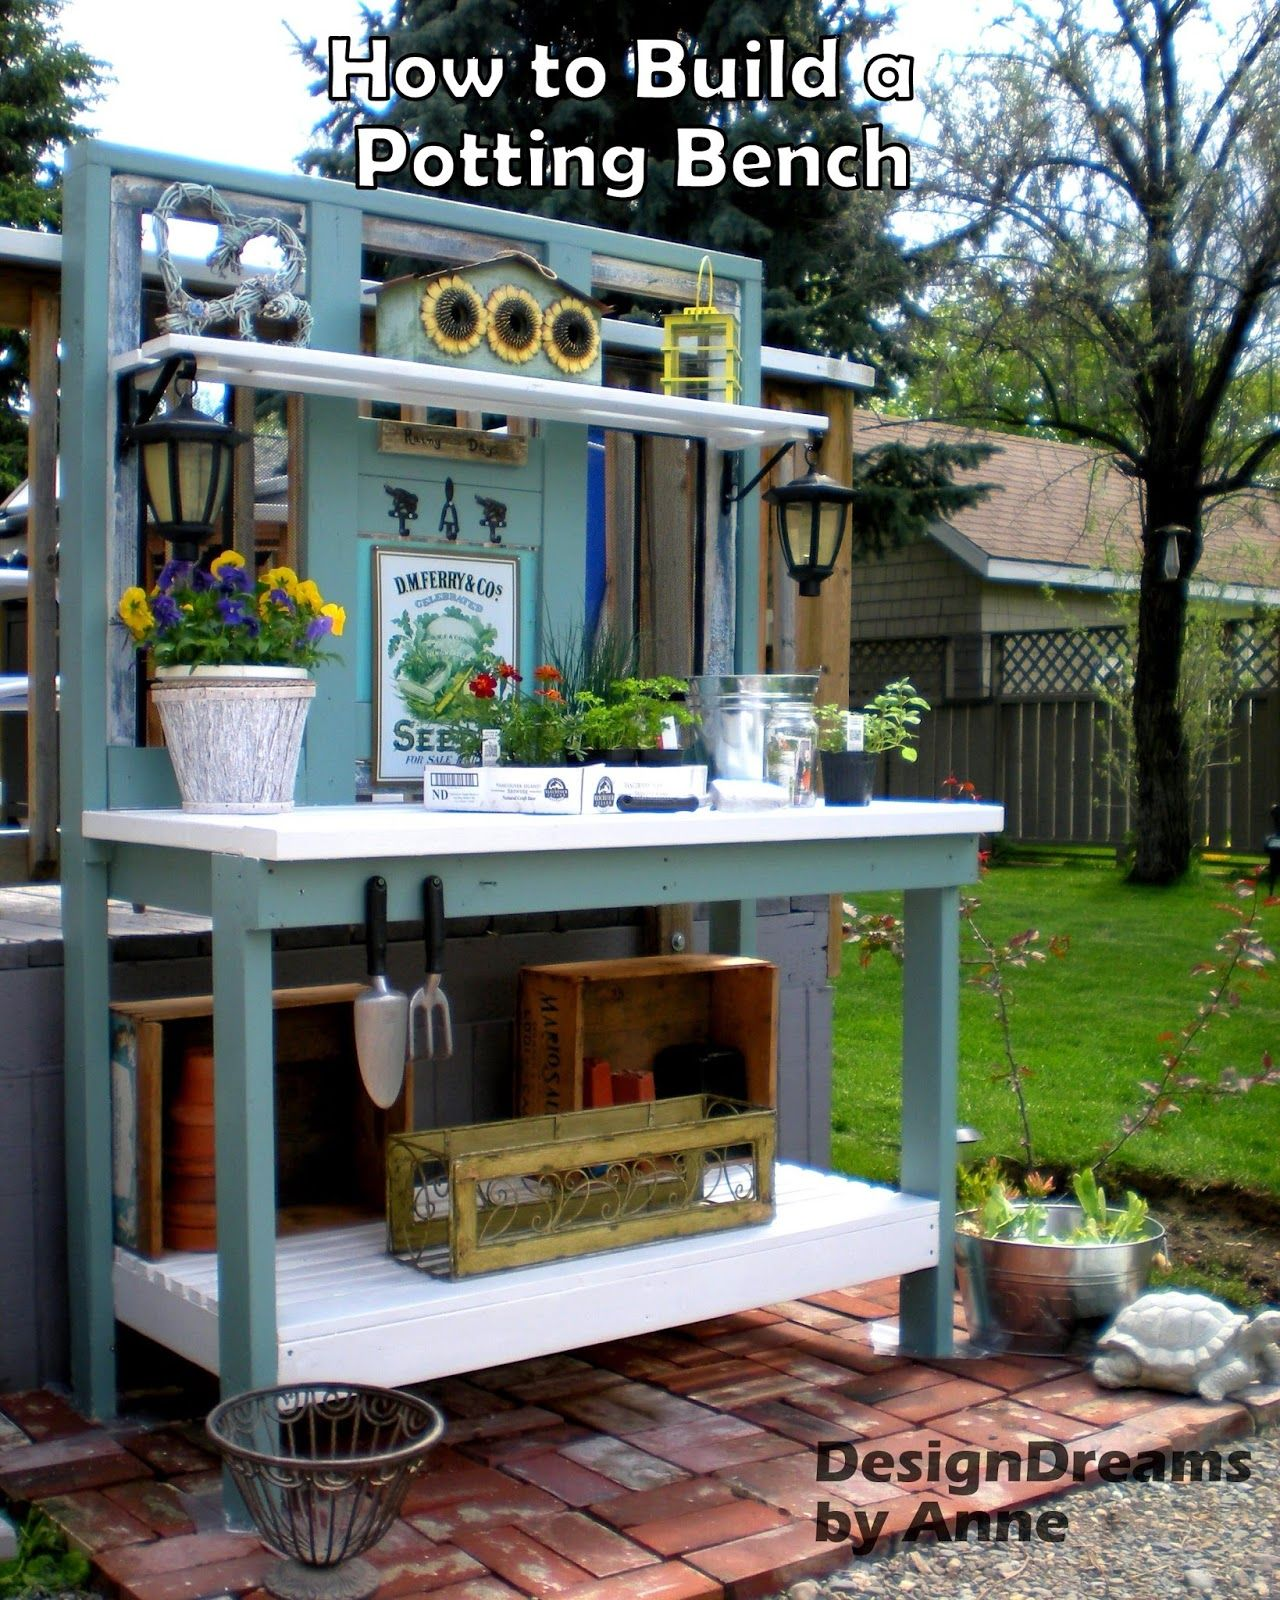 Potting Bench Plans How To Build A Potting Bench Mix Of Old New Materials Your